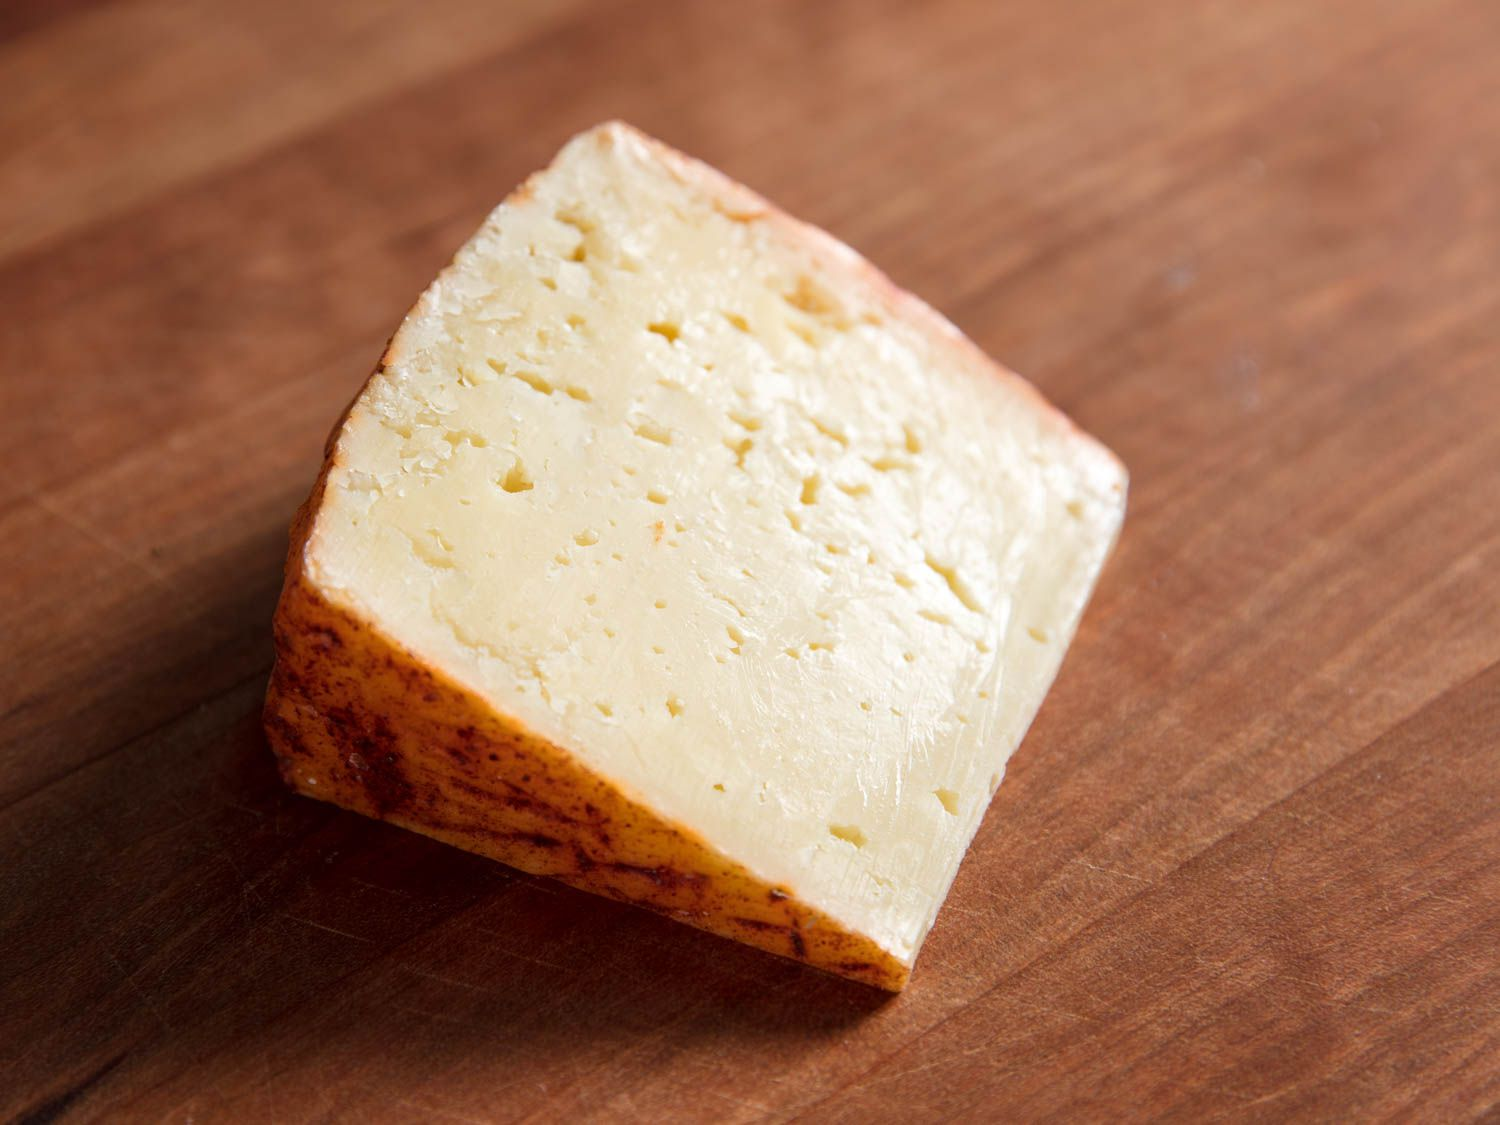 20170810-manchego-cheese-gran-queso-vicky-wasik-5.jpg